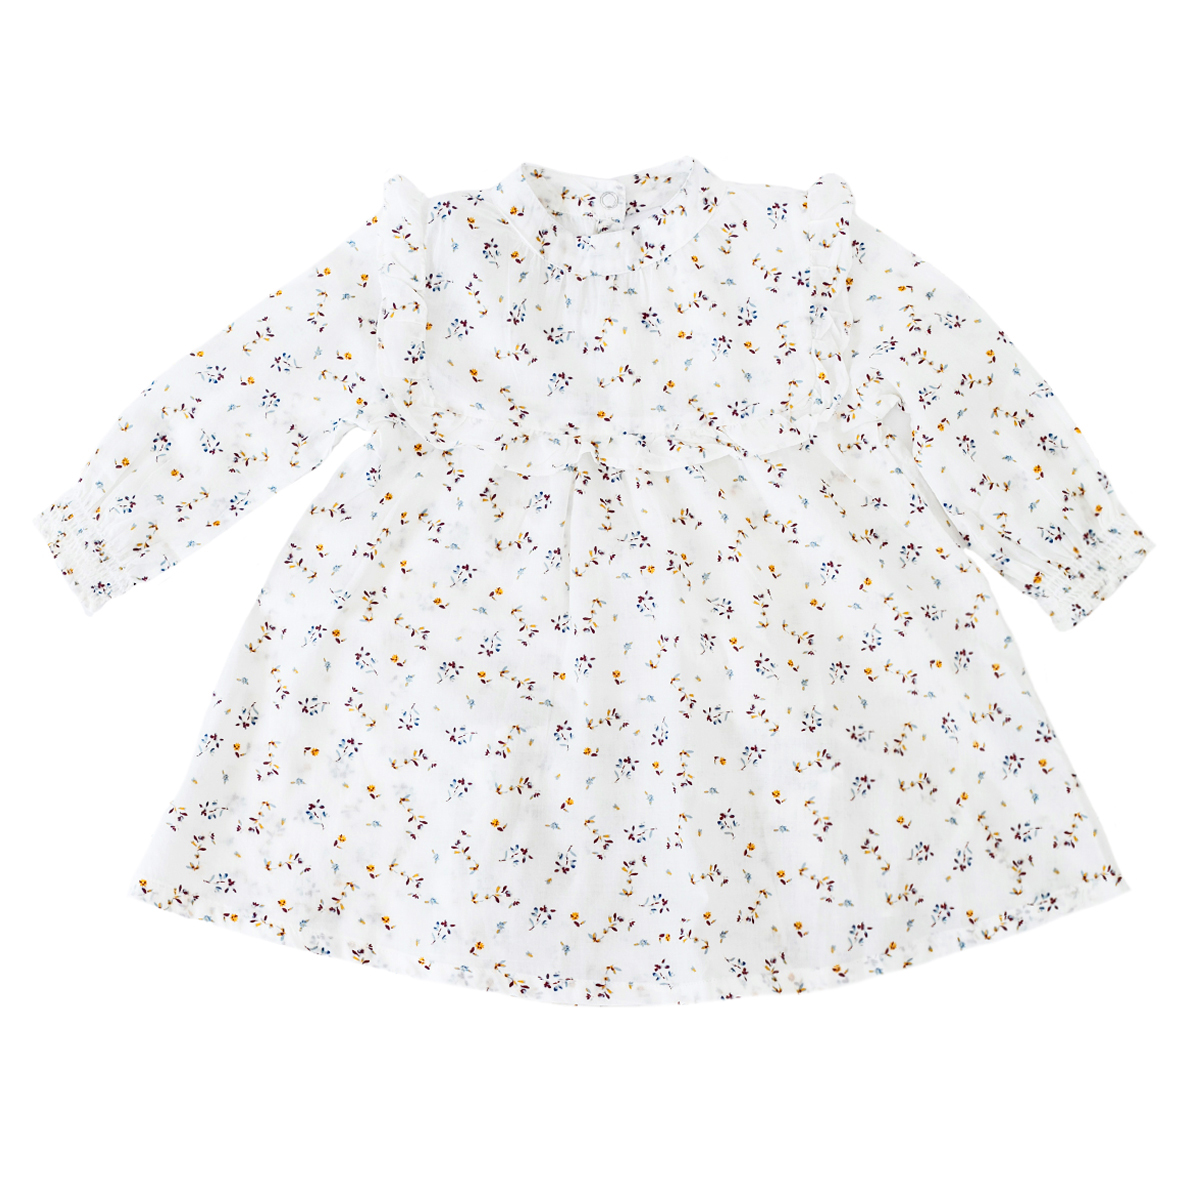 Madras Made Laguna Dress in White with Yellow & Navy Flowers